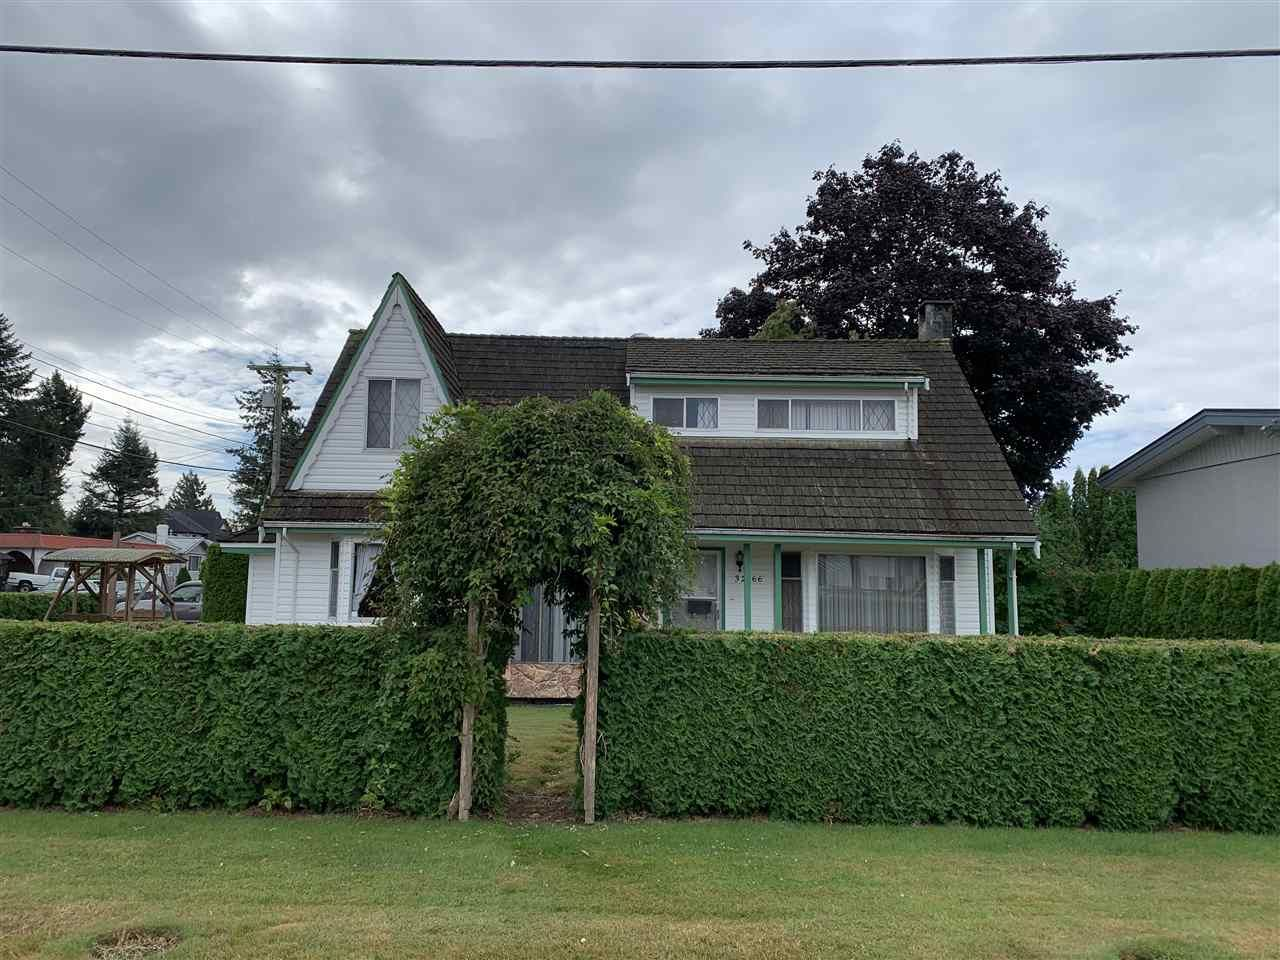 Main Photo: 32166 DORMICK Avenue in Abbotsford: Central Abbotsford House for sale : MLS®# R2489811